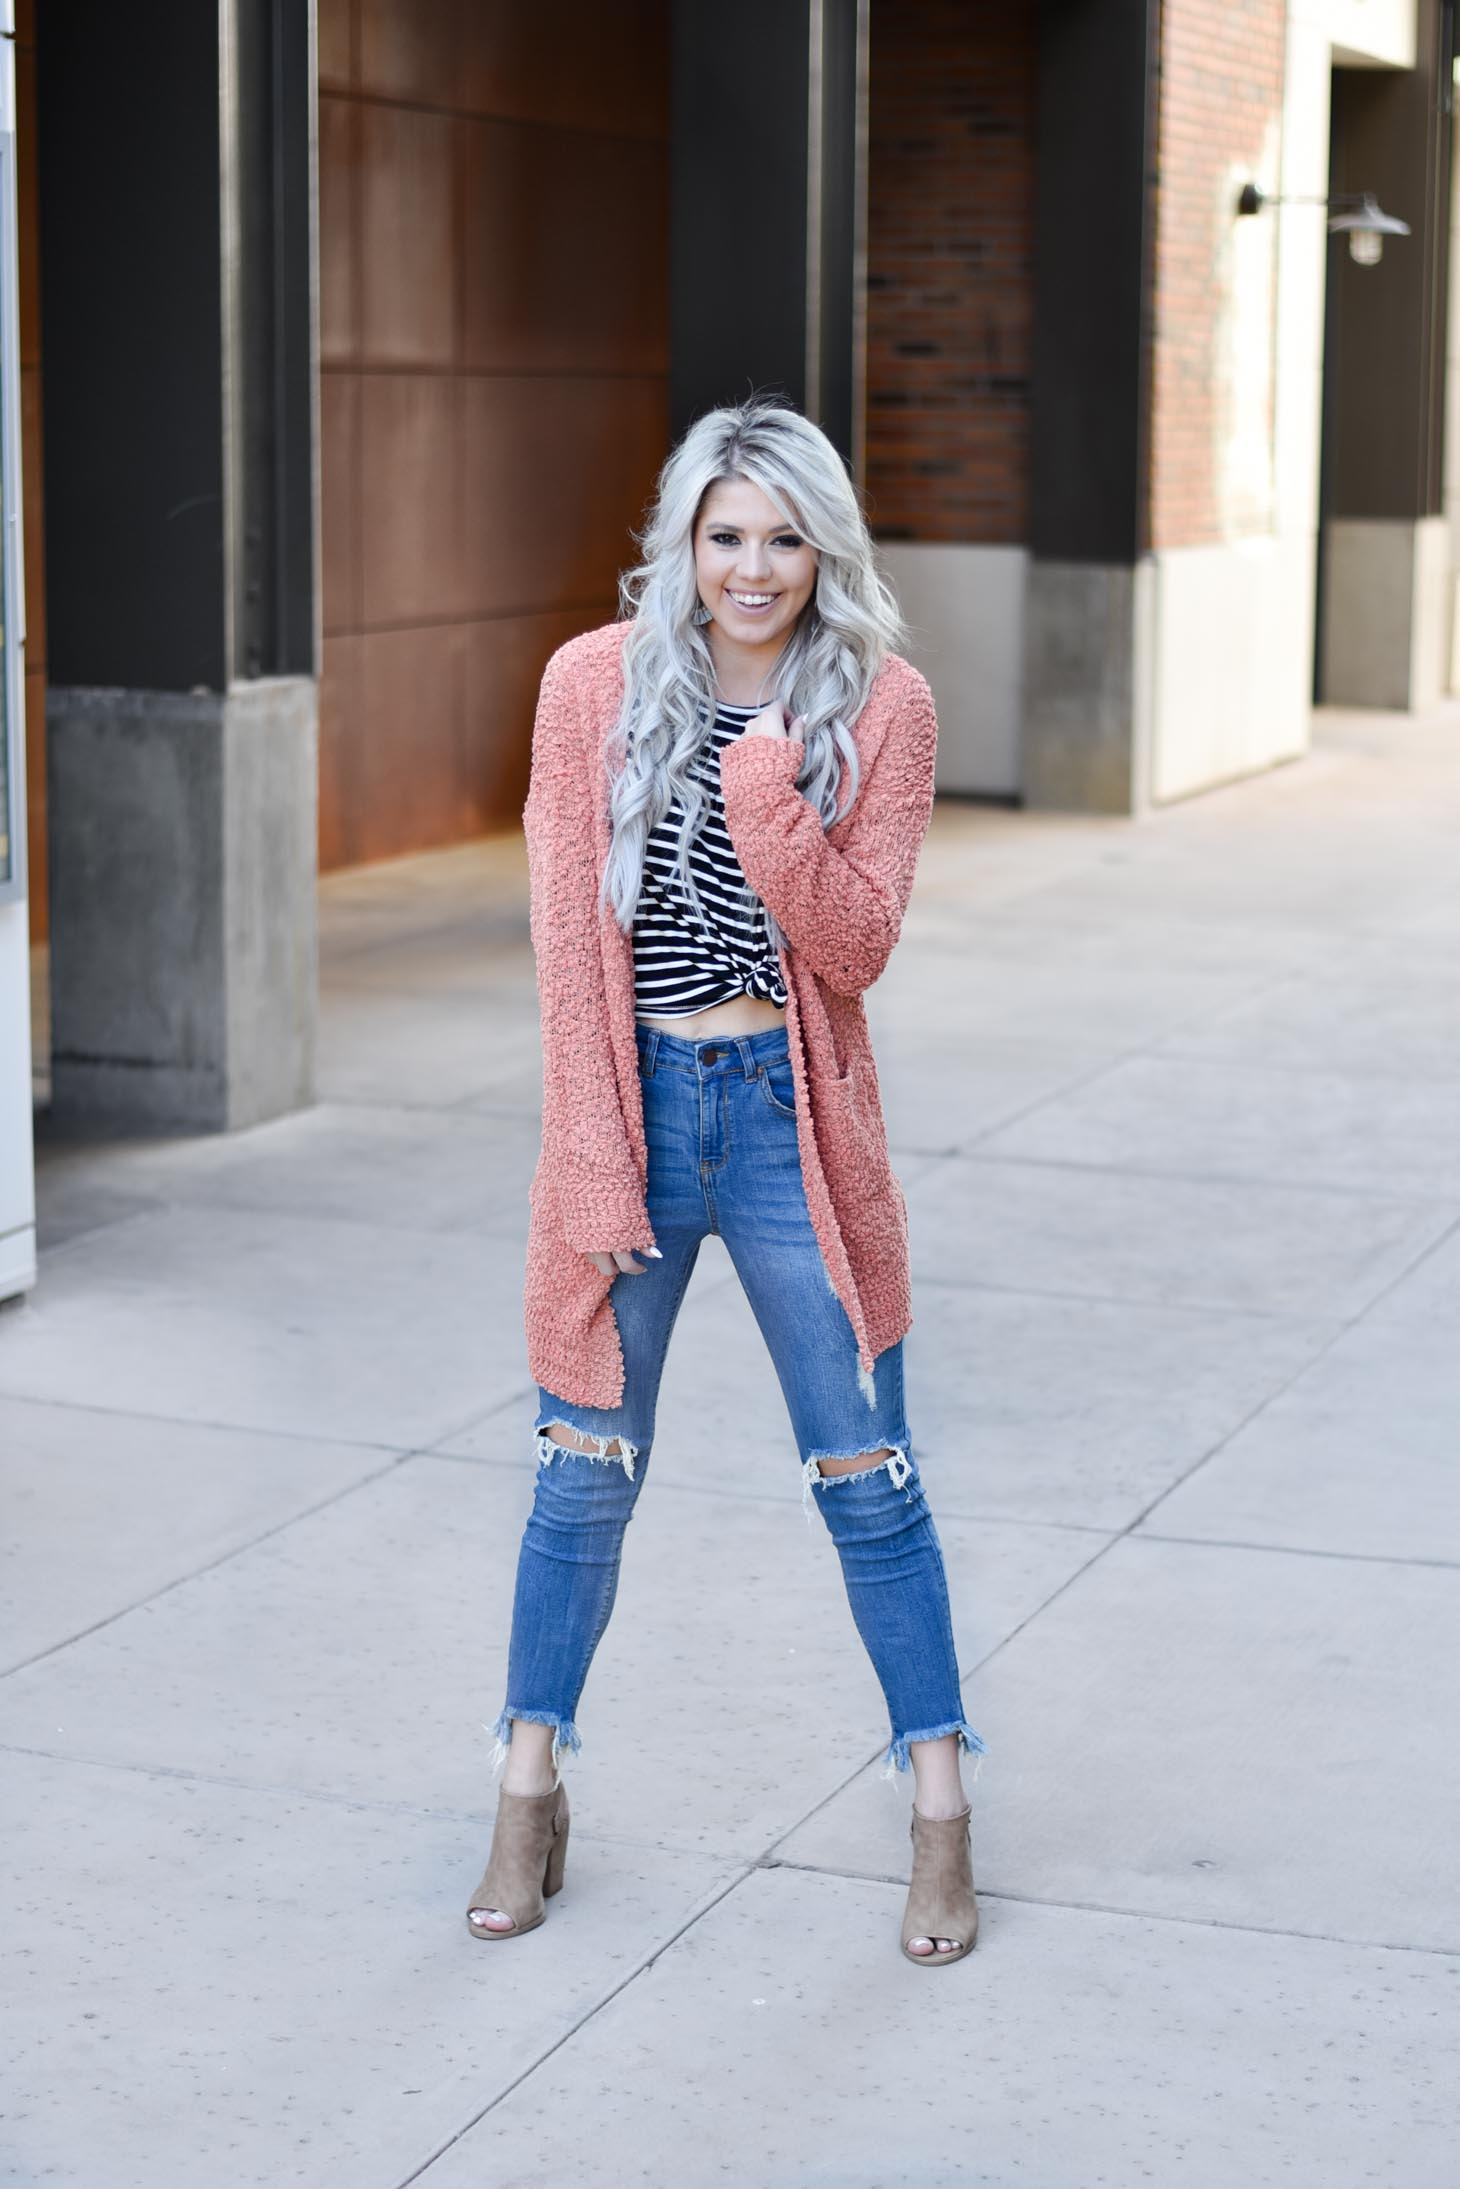 Erin Elizabeth of Wink and a Twirl shares two ways to style a striped top from Pink Lily Boutique perfect for your fall style this year